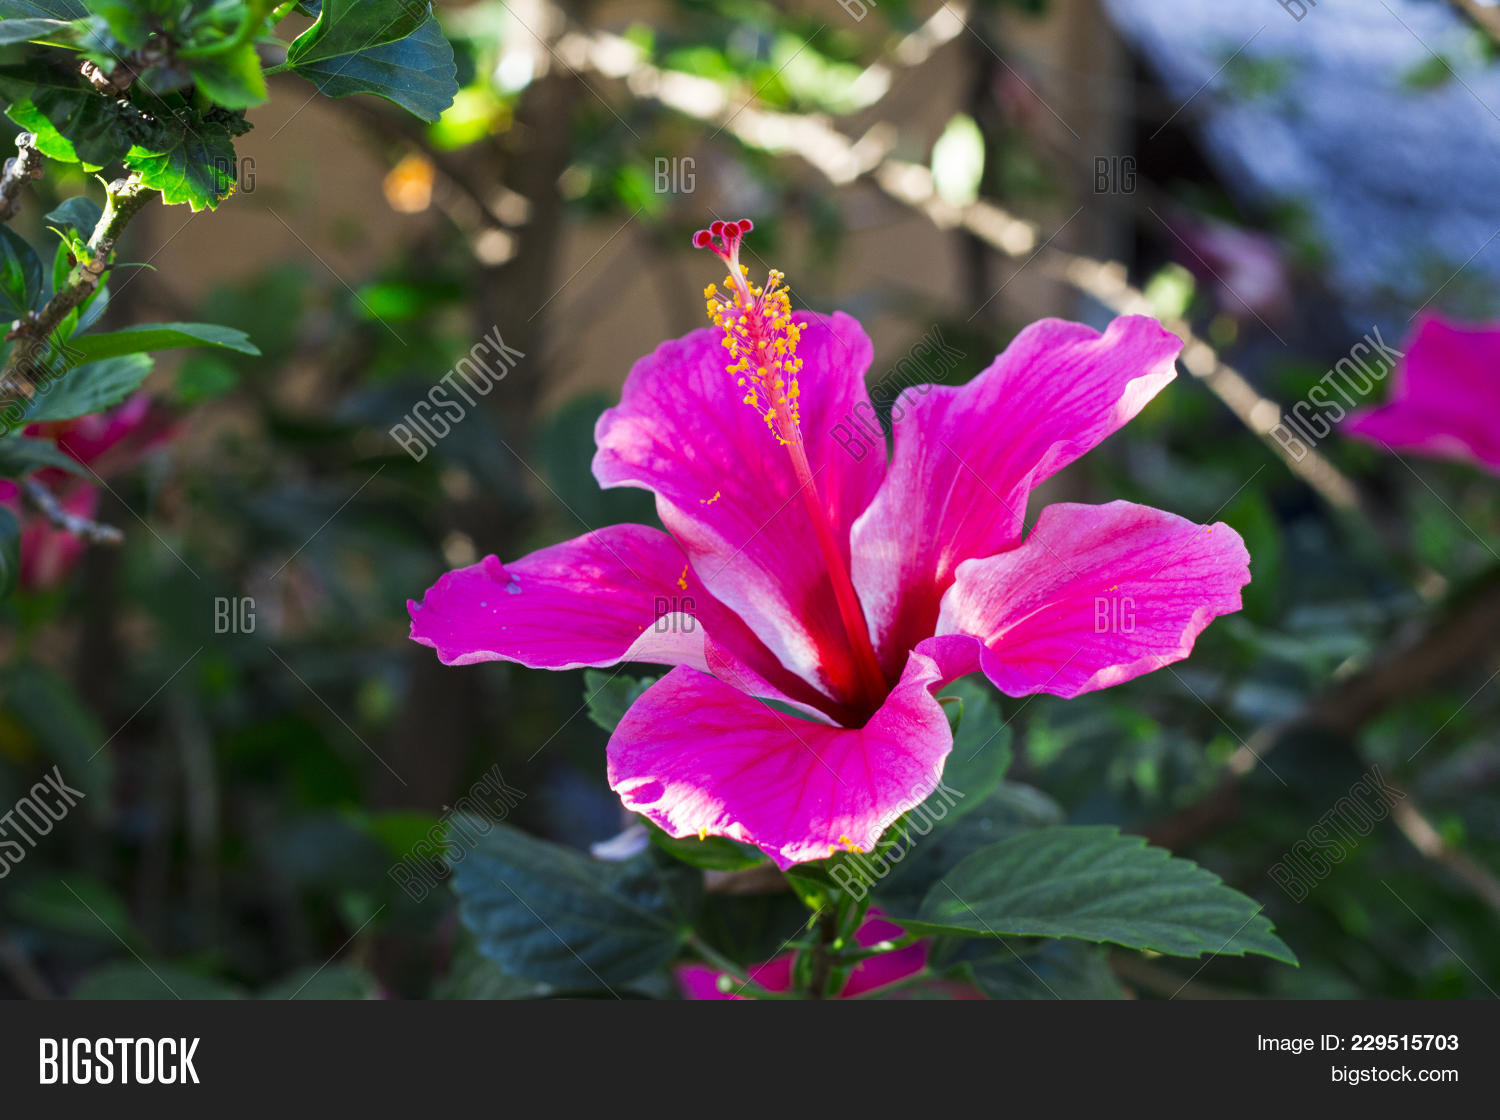 Pink Hibiscus Flower Image Photo Free Trial Bigstock